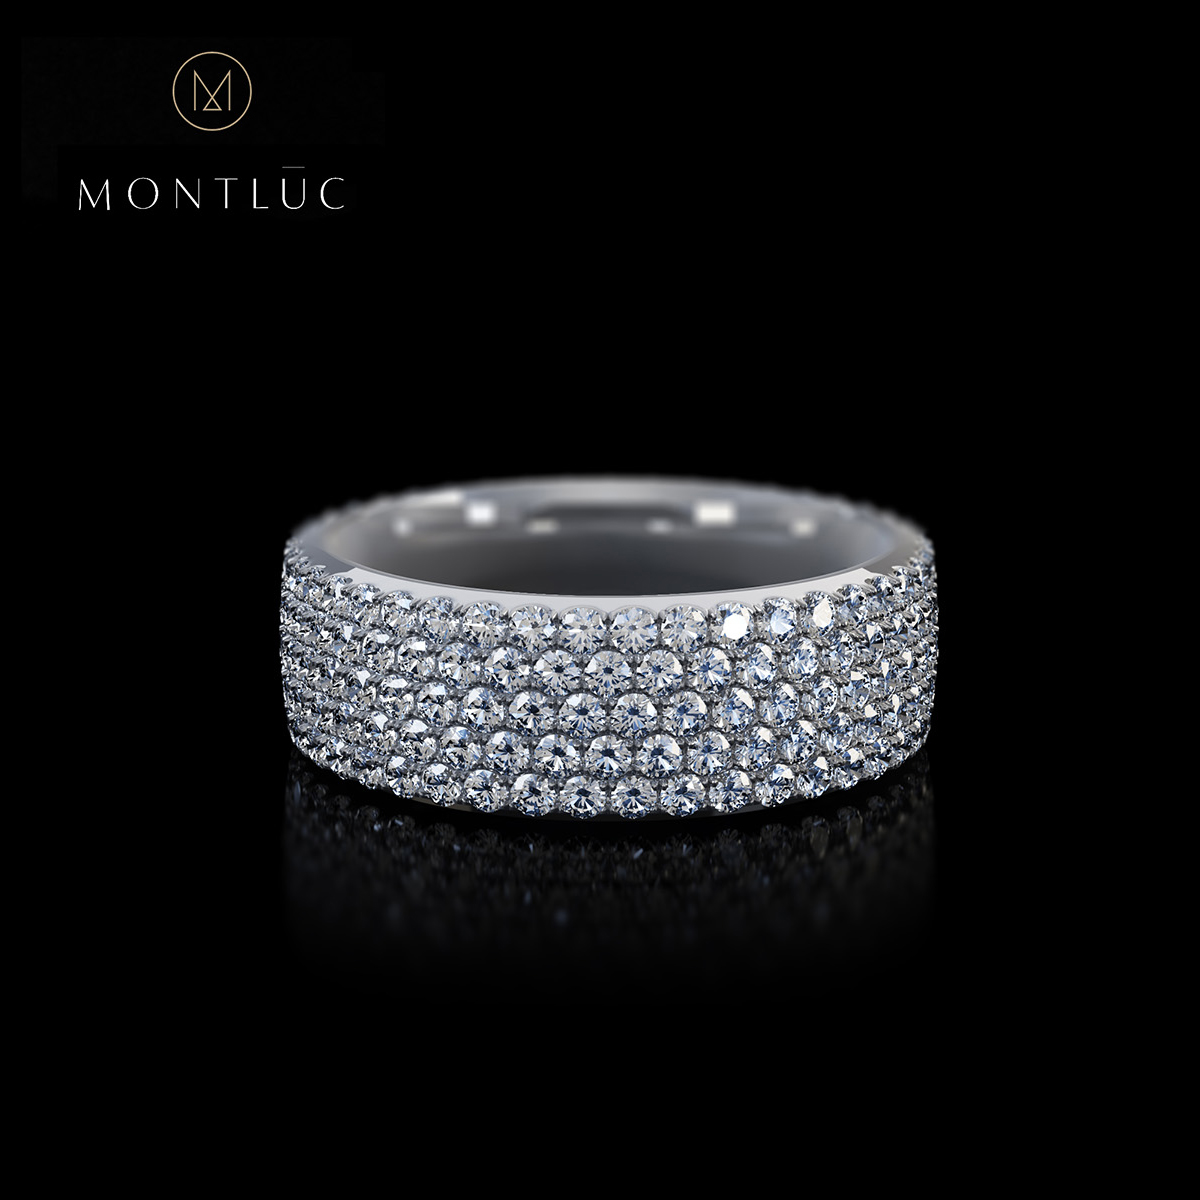 Montluc Jewellery - The Stargazer Pave Diamond Ring